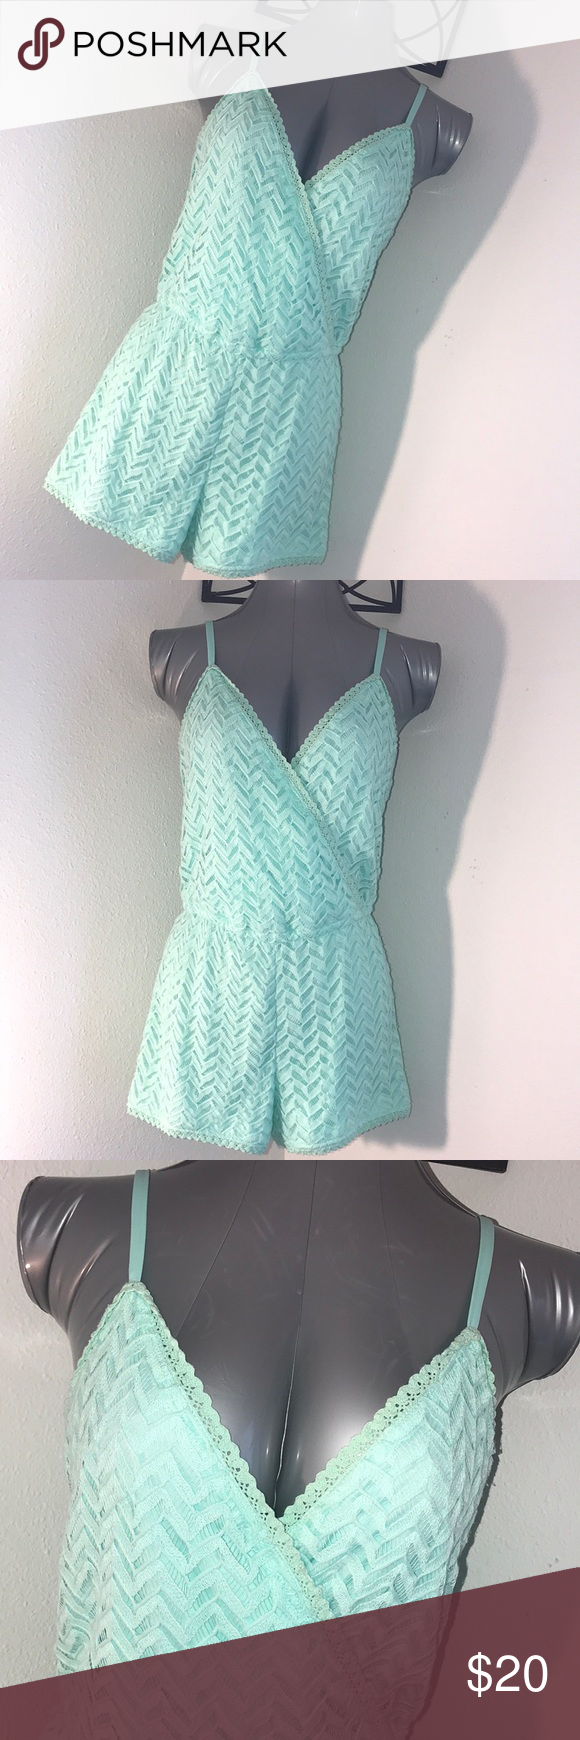 97429eb918c Chevron Lace Romper Gorgeous Mint lace